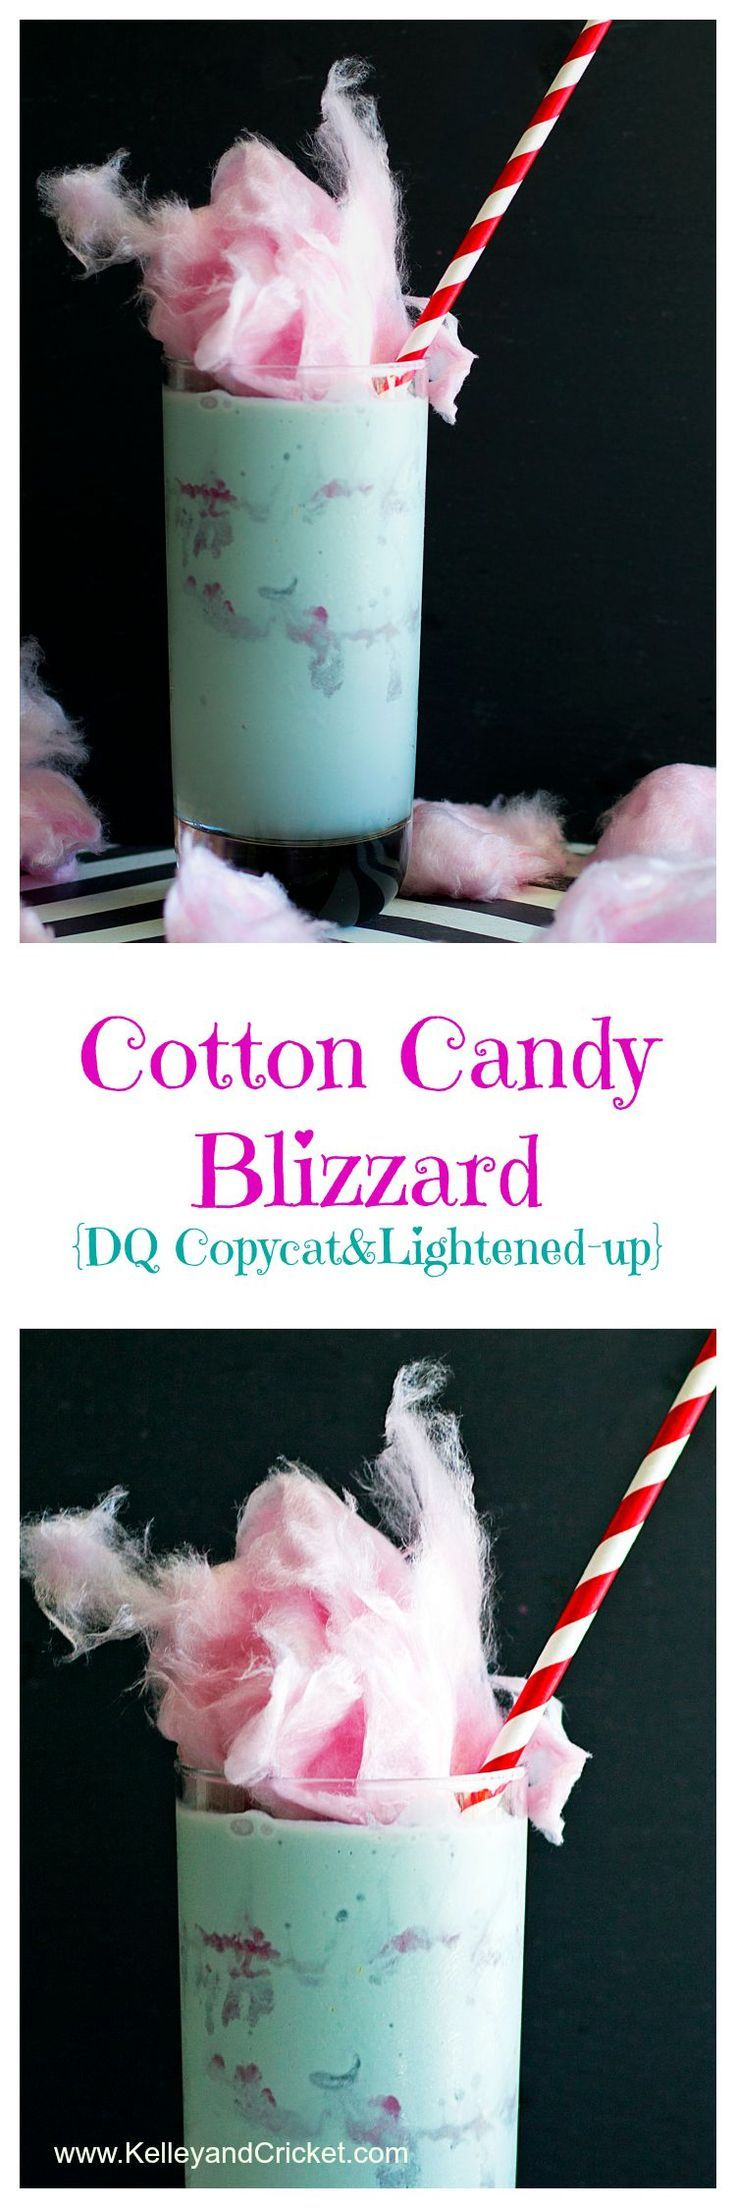 Delicious and delightful, this Cotton Candy Blizzard will MAKE your day! Go ahead and indulge without gilt because it happens be be secretly light! Dairy-free option too!